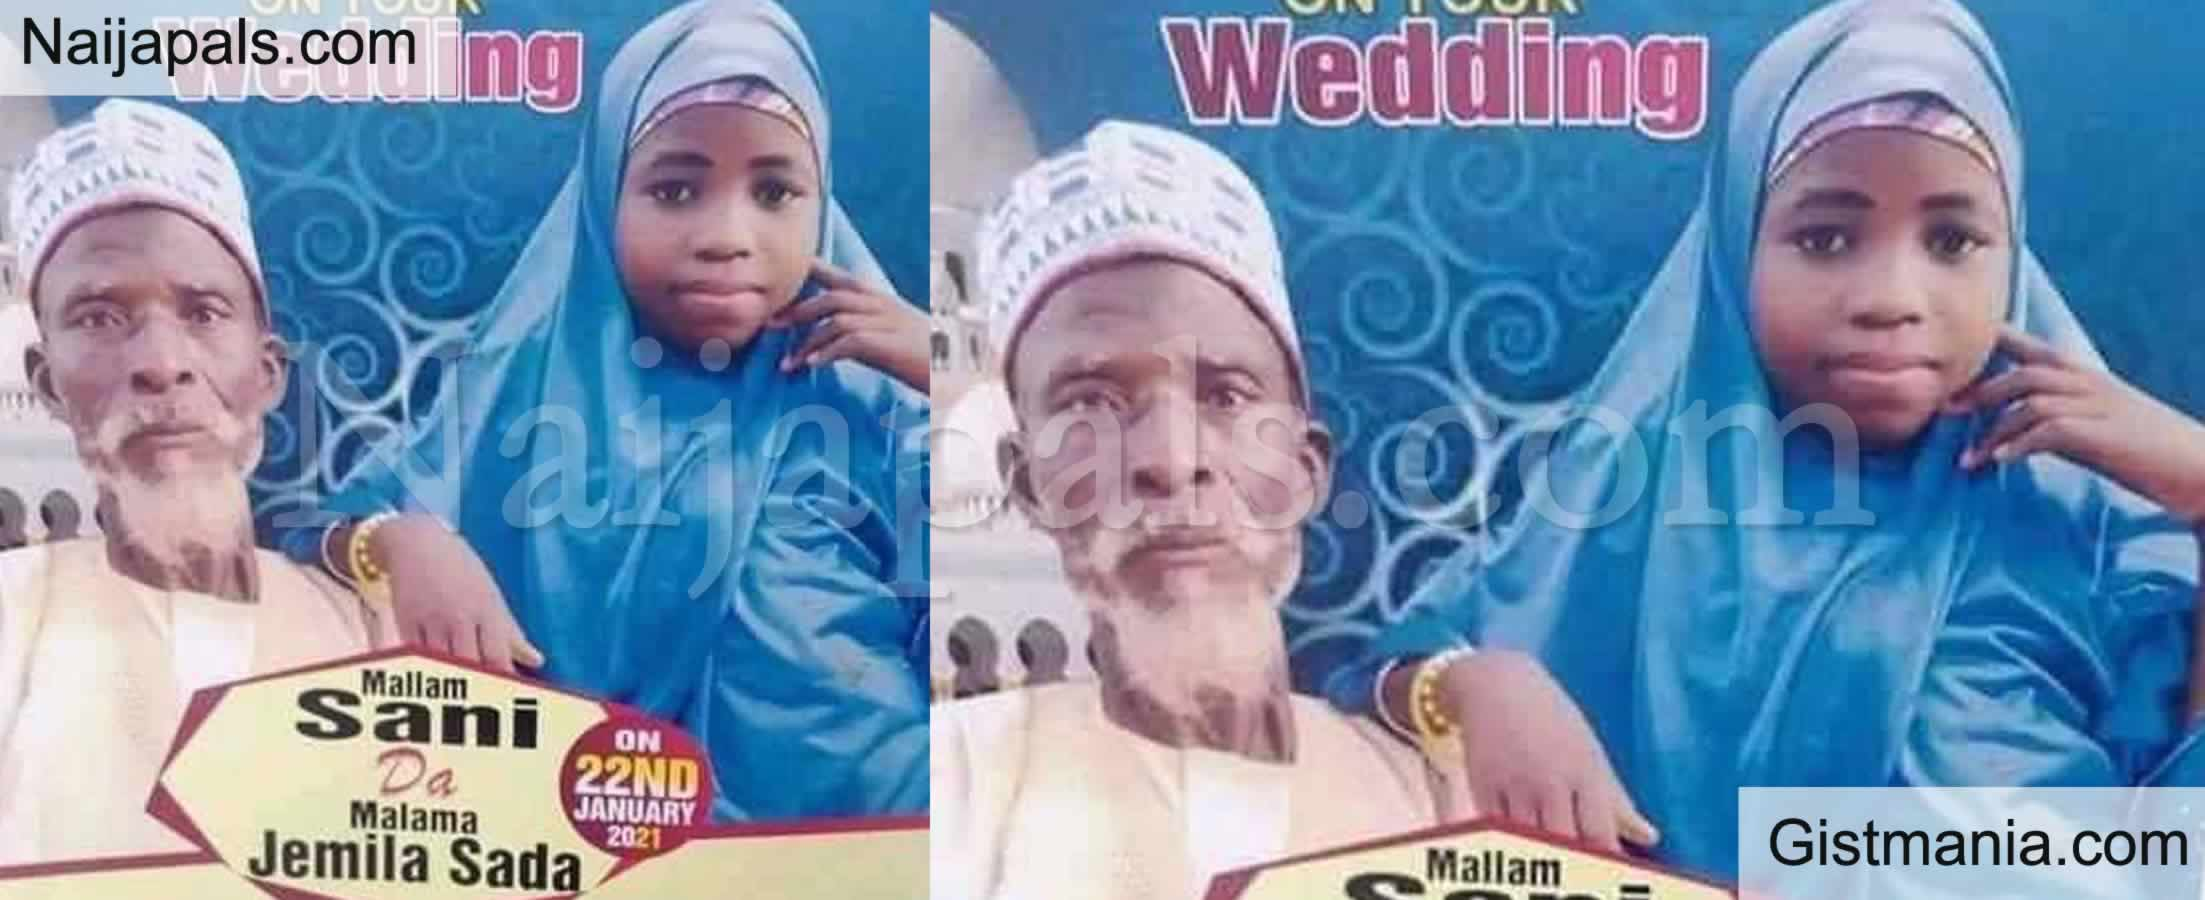 "<img alt='.' class='lazyload' data-src='https://img.gistmania.com/emot/comment.gif' /> <b>""This Is Child Abuse""</b> - Nigerians React As Elderly Grandfather Marries Little Girl In Northern Nigeria"